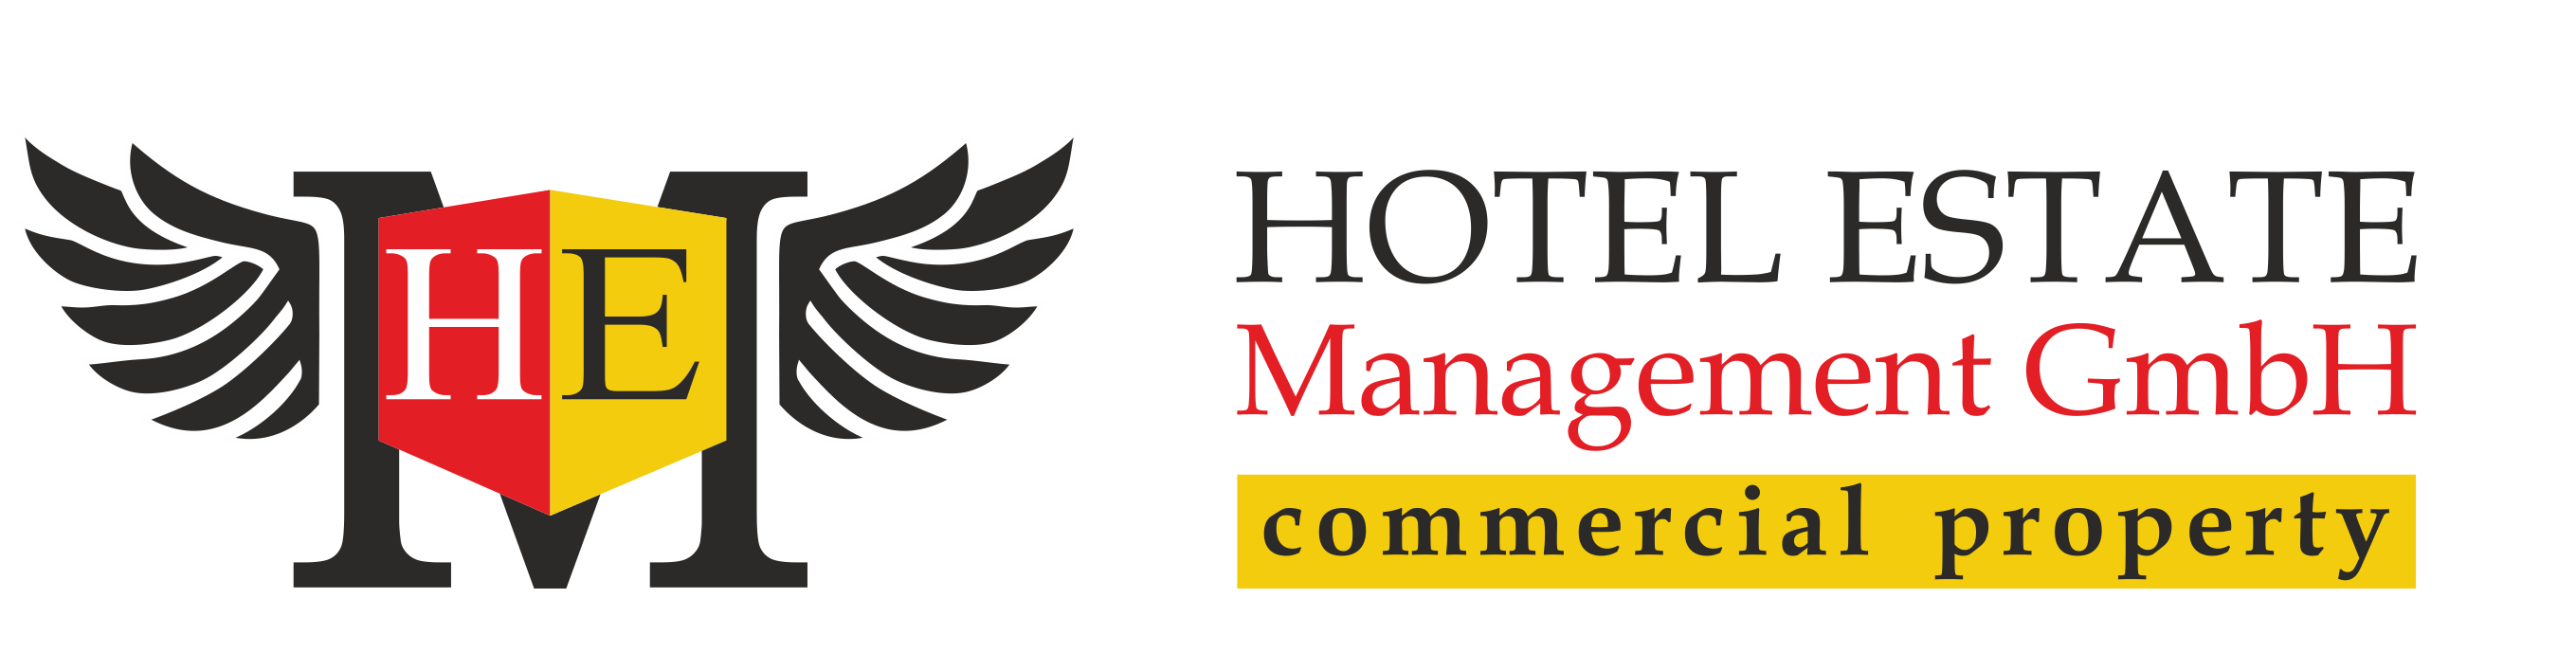 Hotel Estate Management GmbH